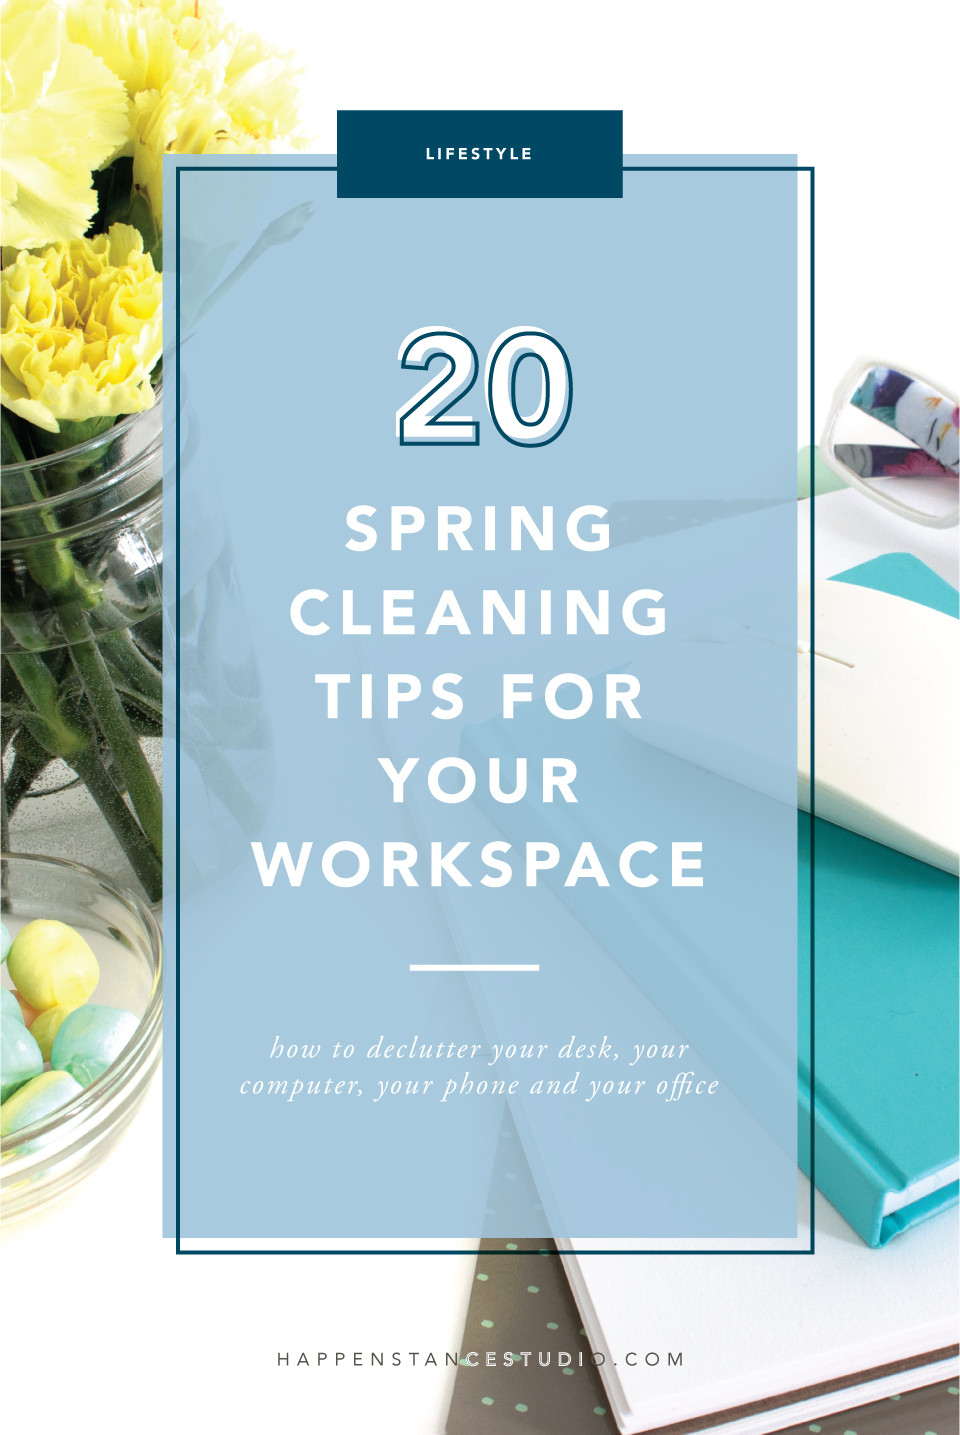 20 Spring Cleaning Tips for Your Workspace